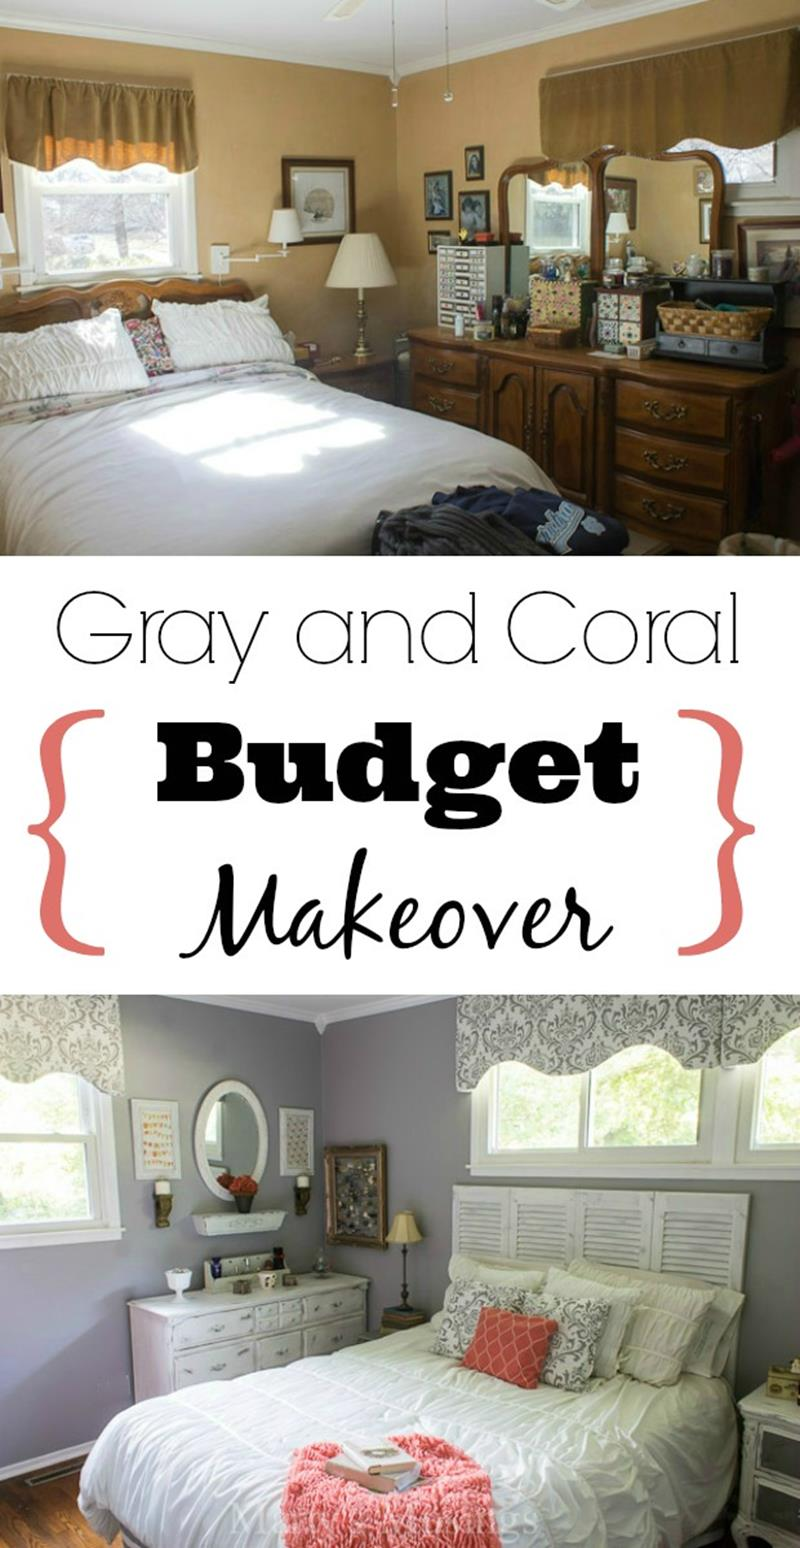 24 Pictures of Before and After Master Bedrooms with Cost-6